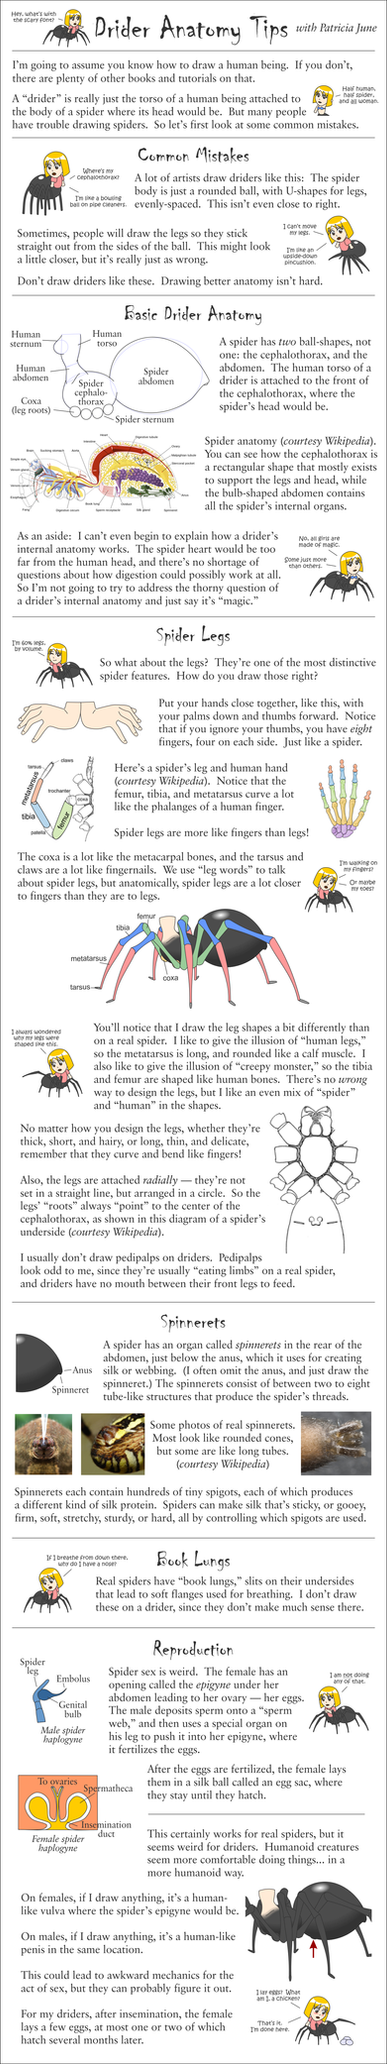 Drider Anatomy Tips by phantom-inker on DeviantArt